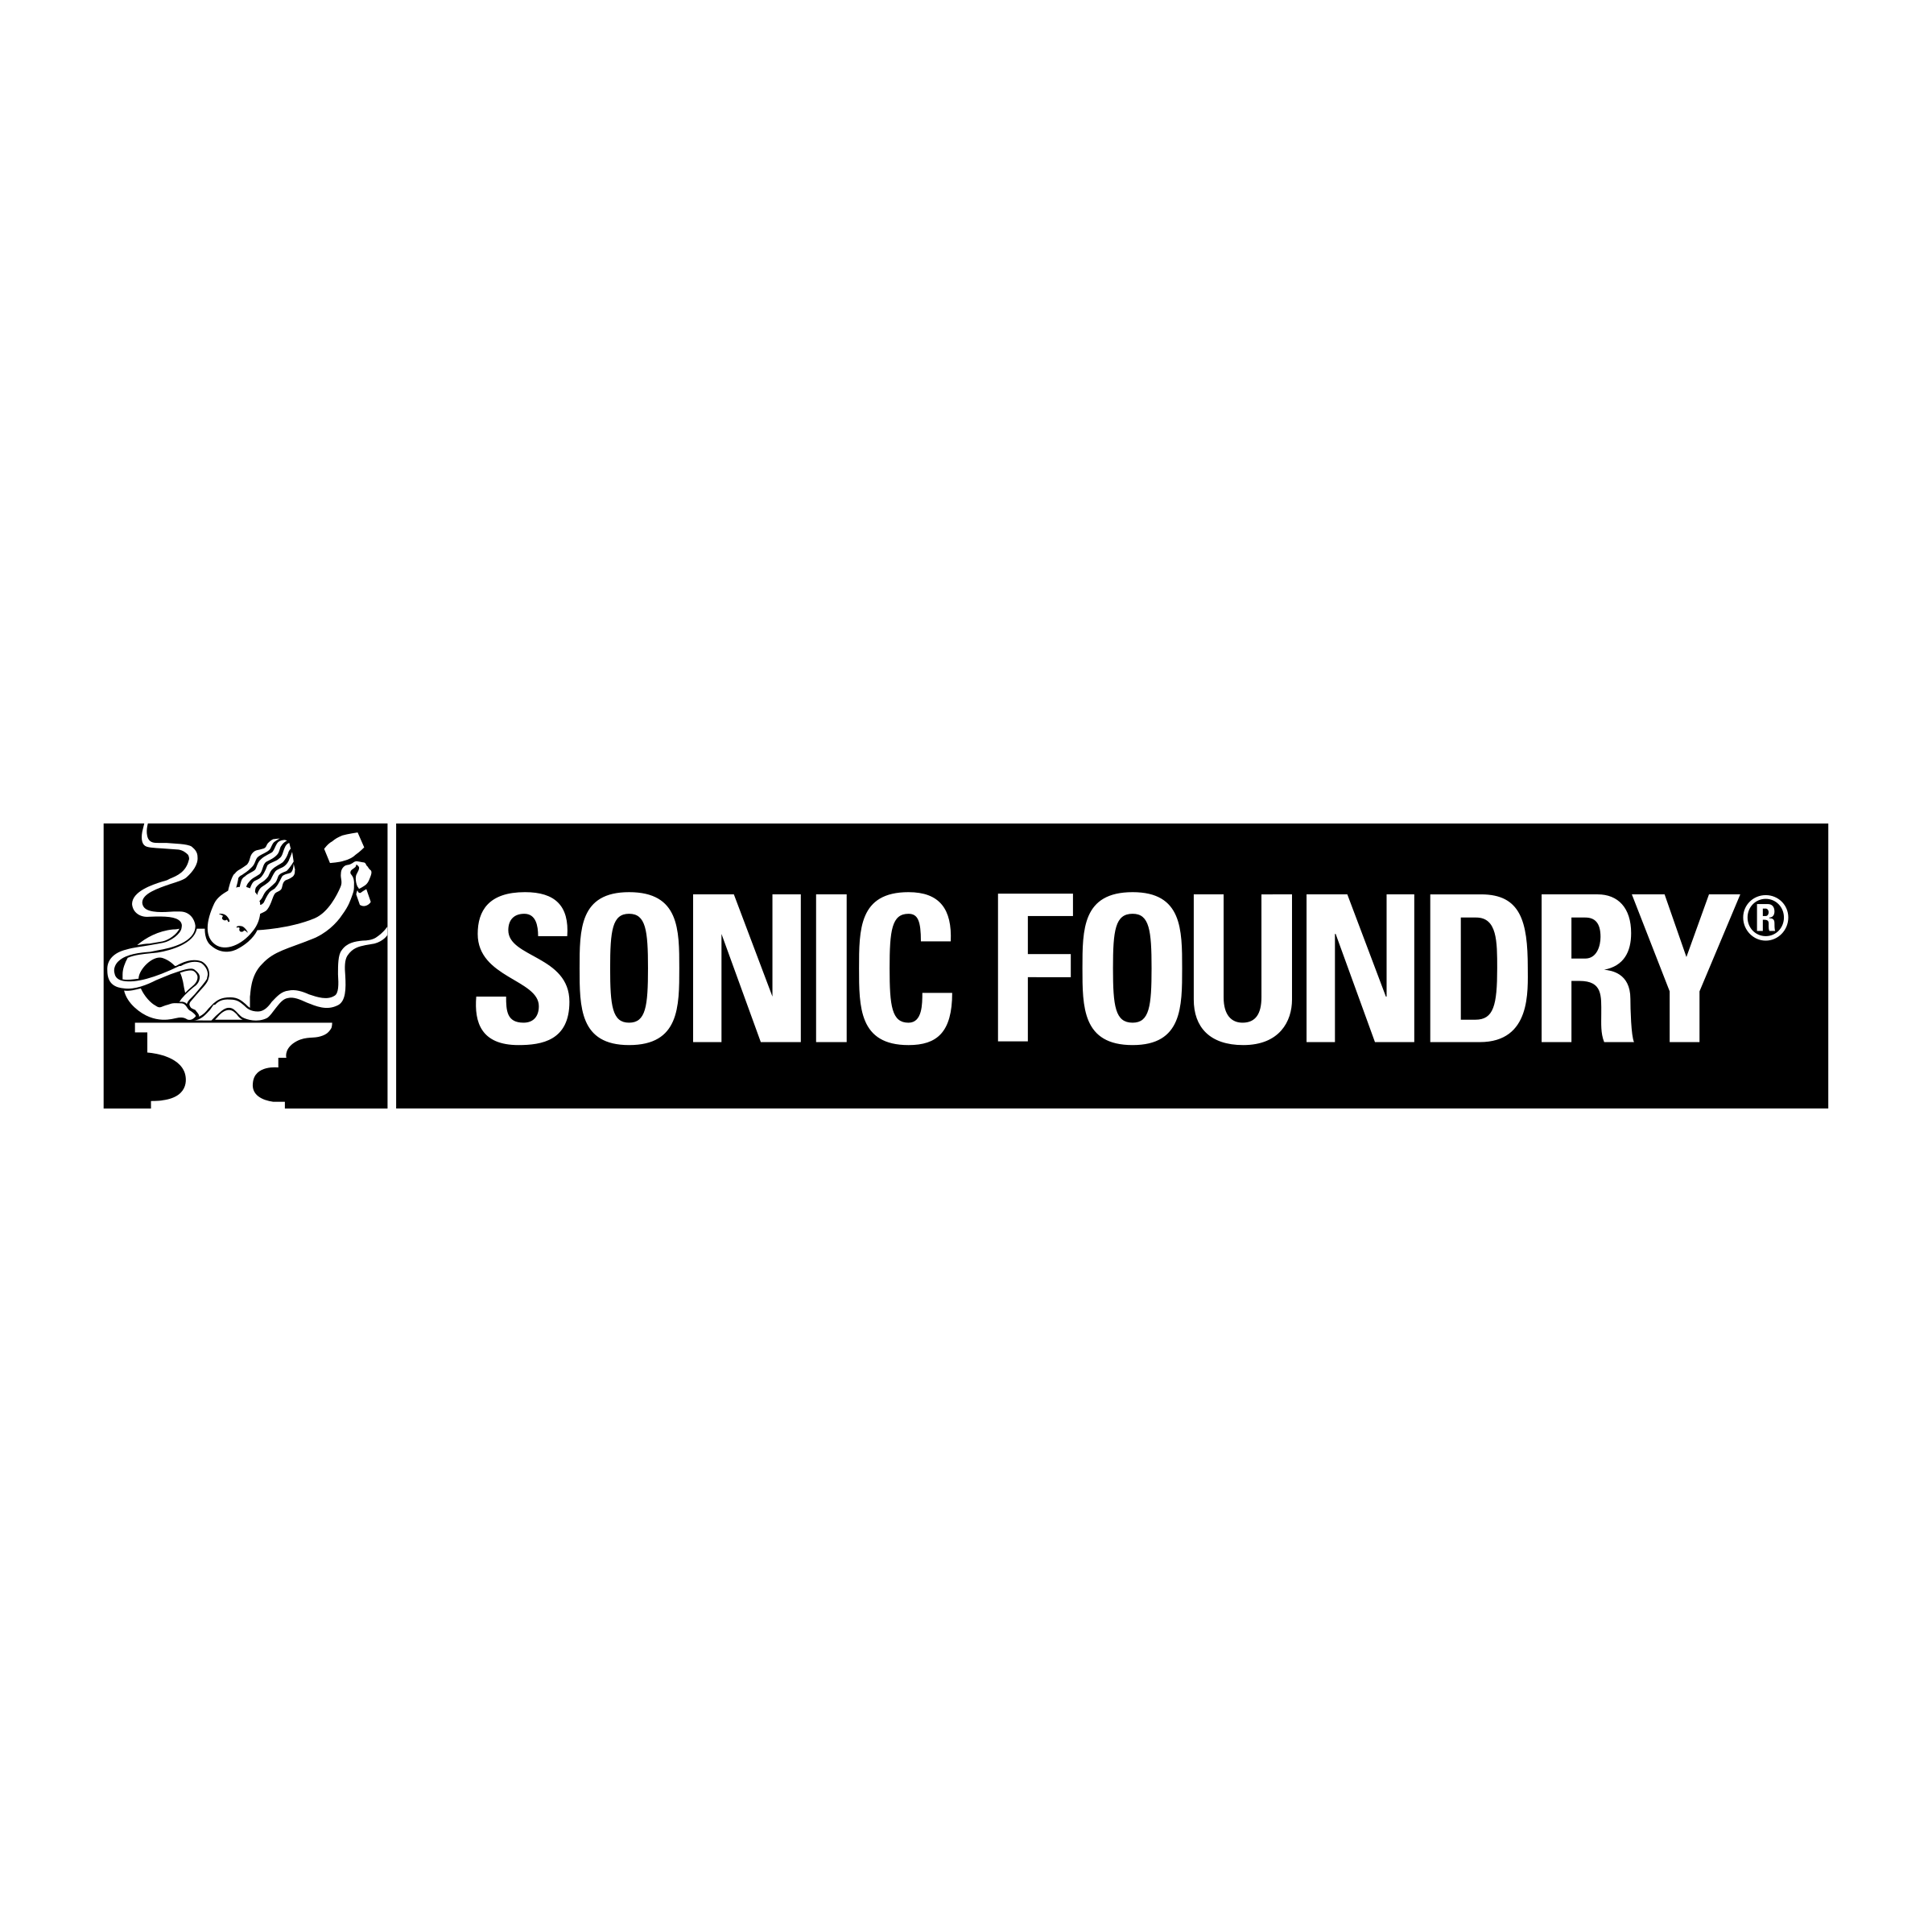 Sonic Foundry Logo PNG Transparent & SVG Vector - Freebie Supply